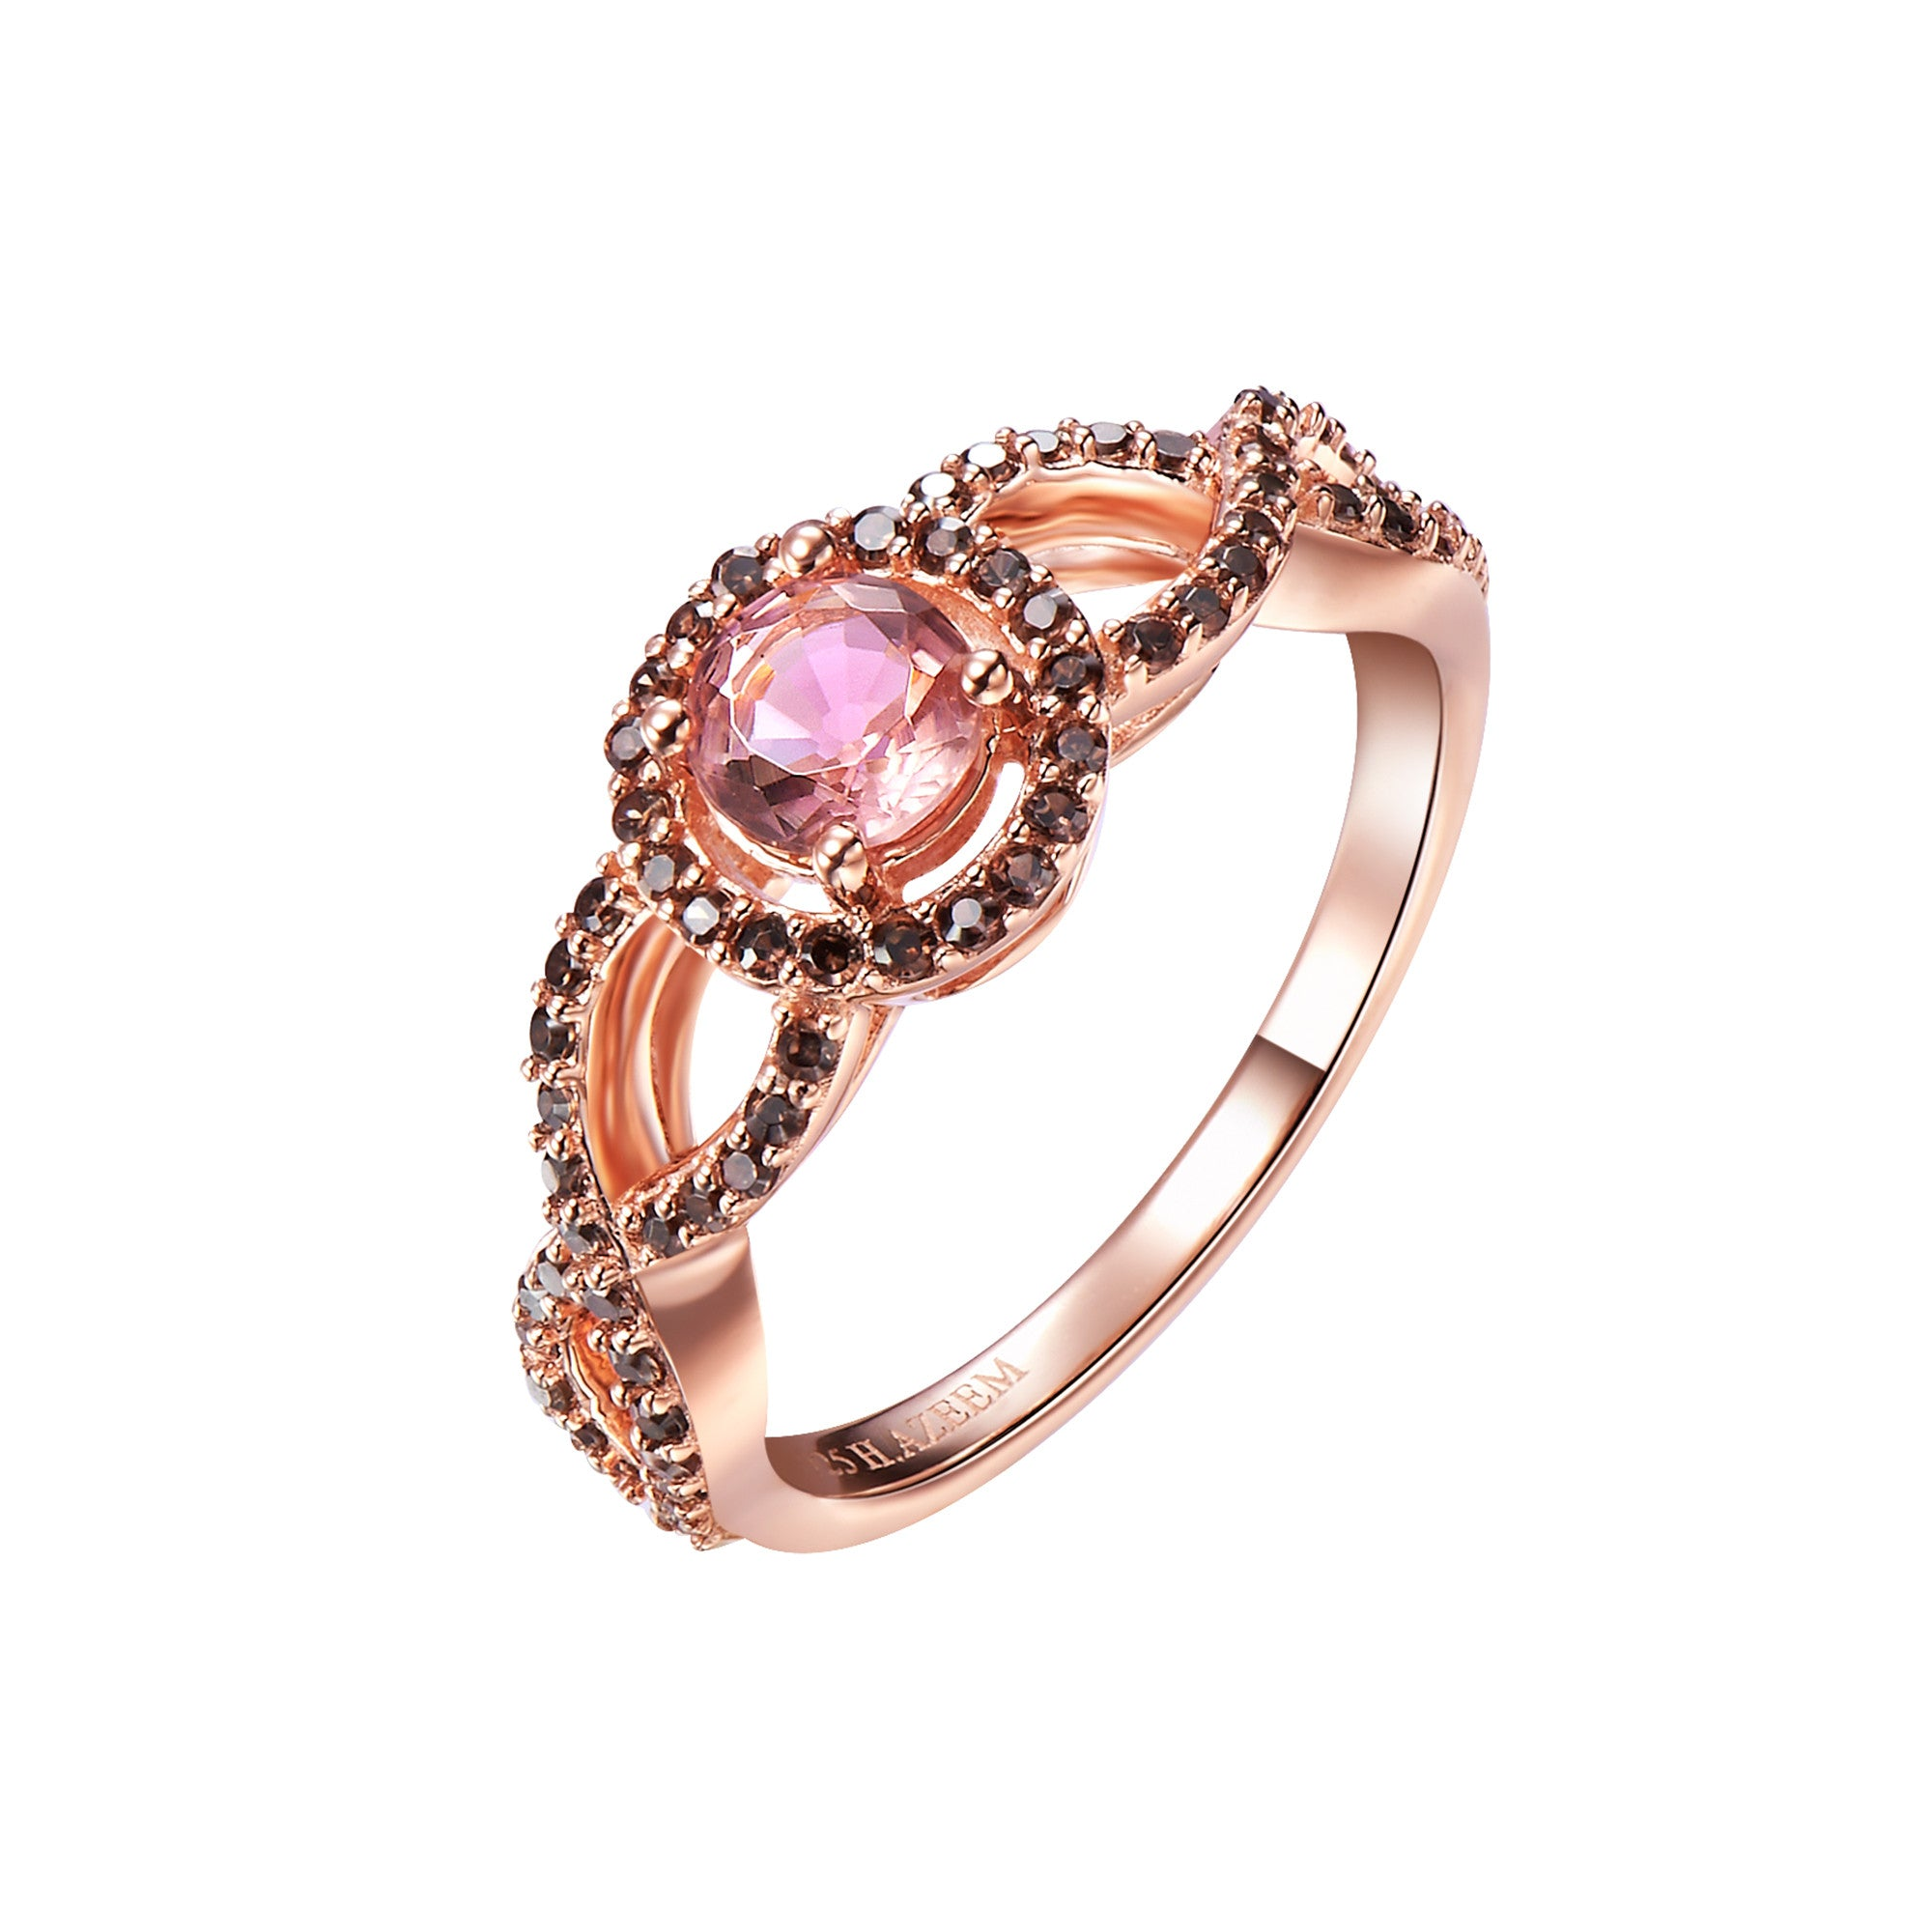 Dreamy Tourmaline Ring